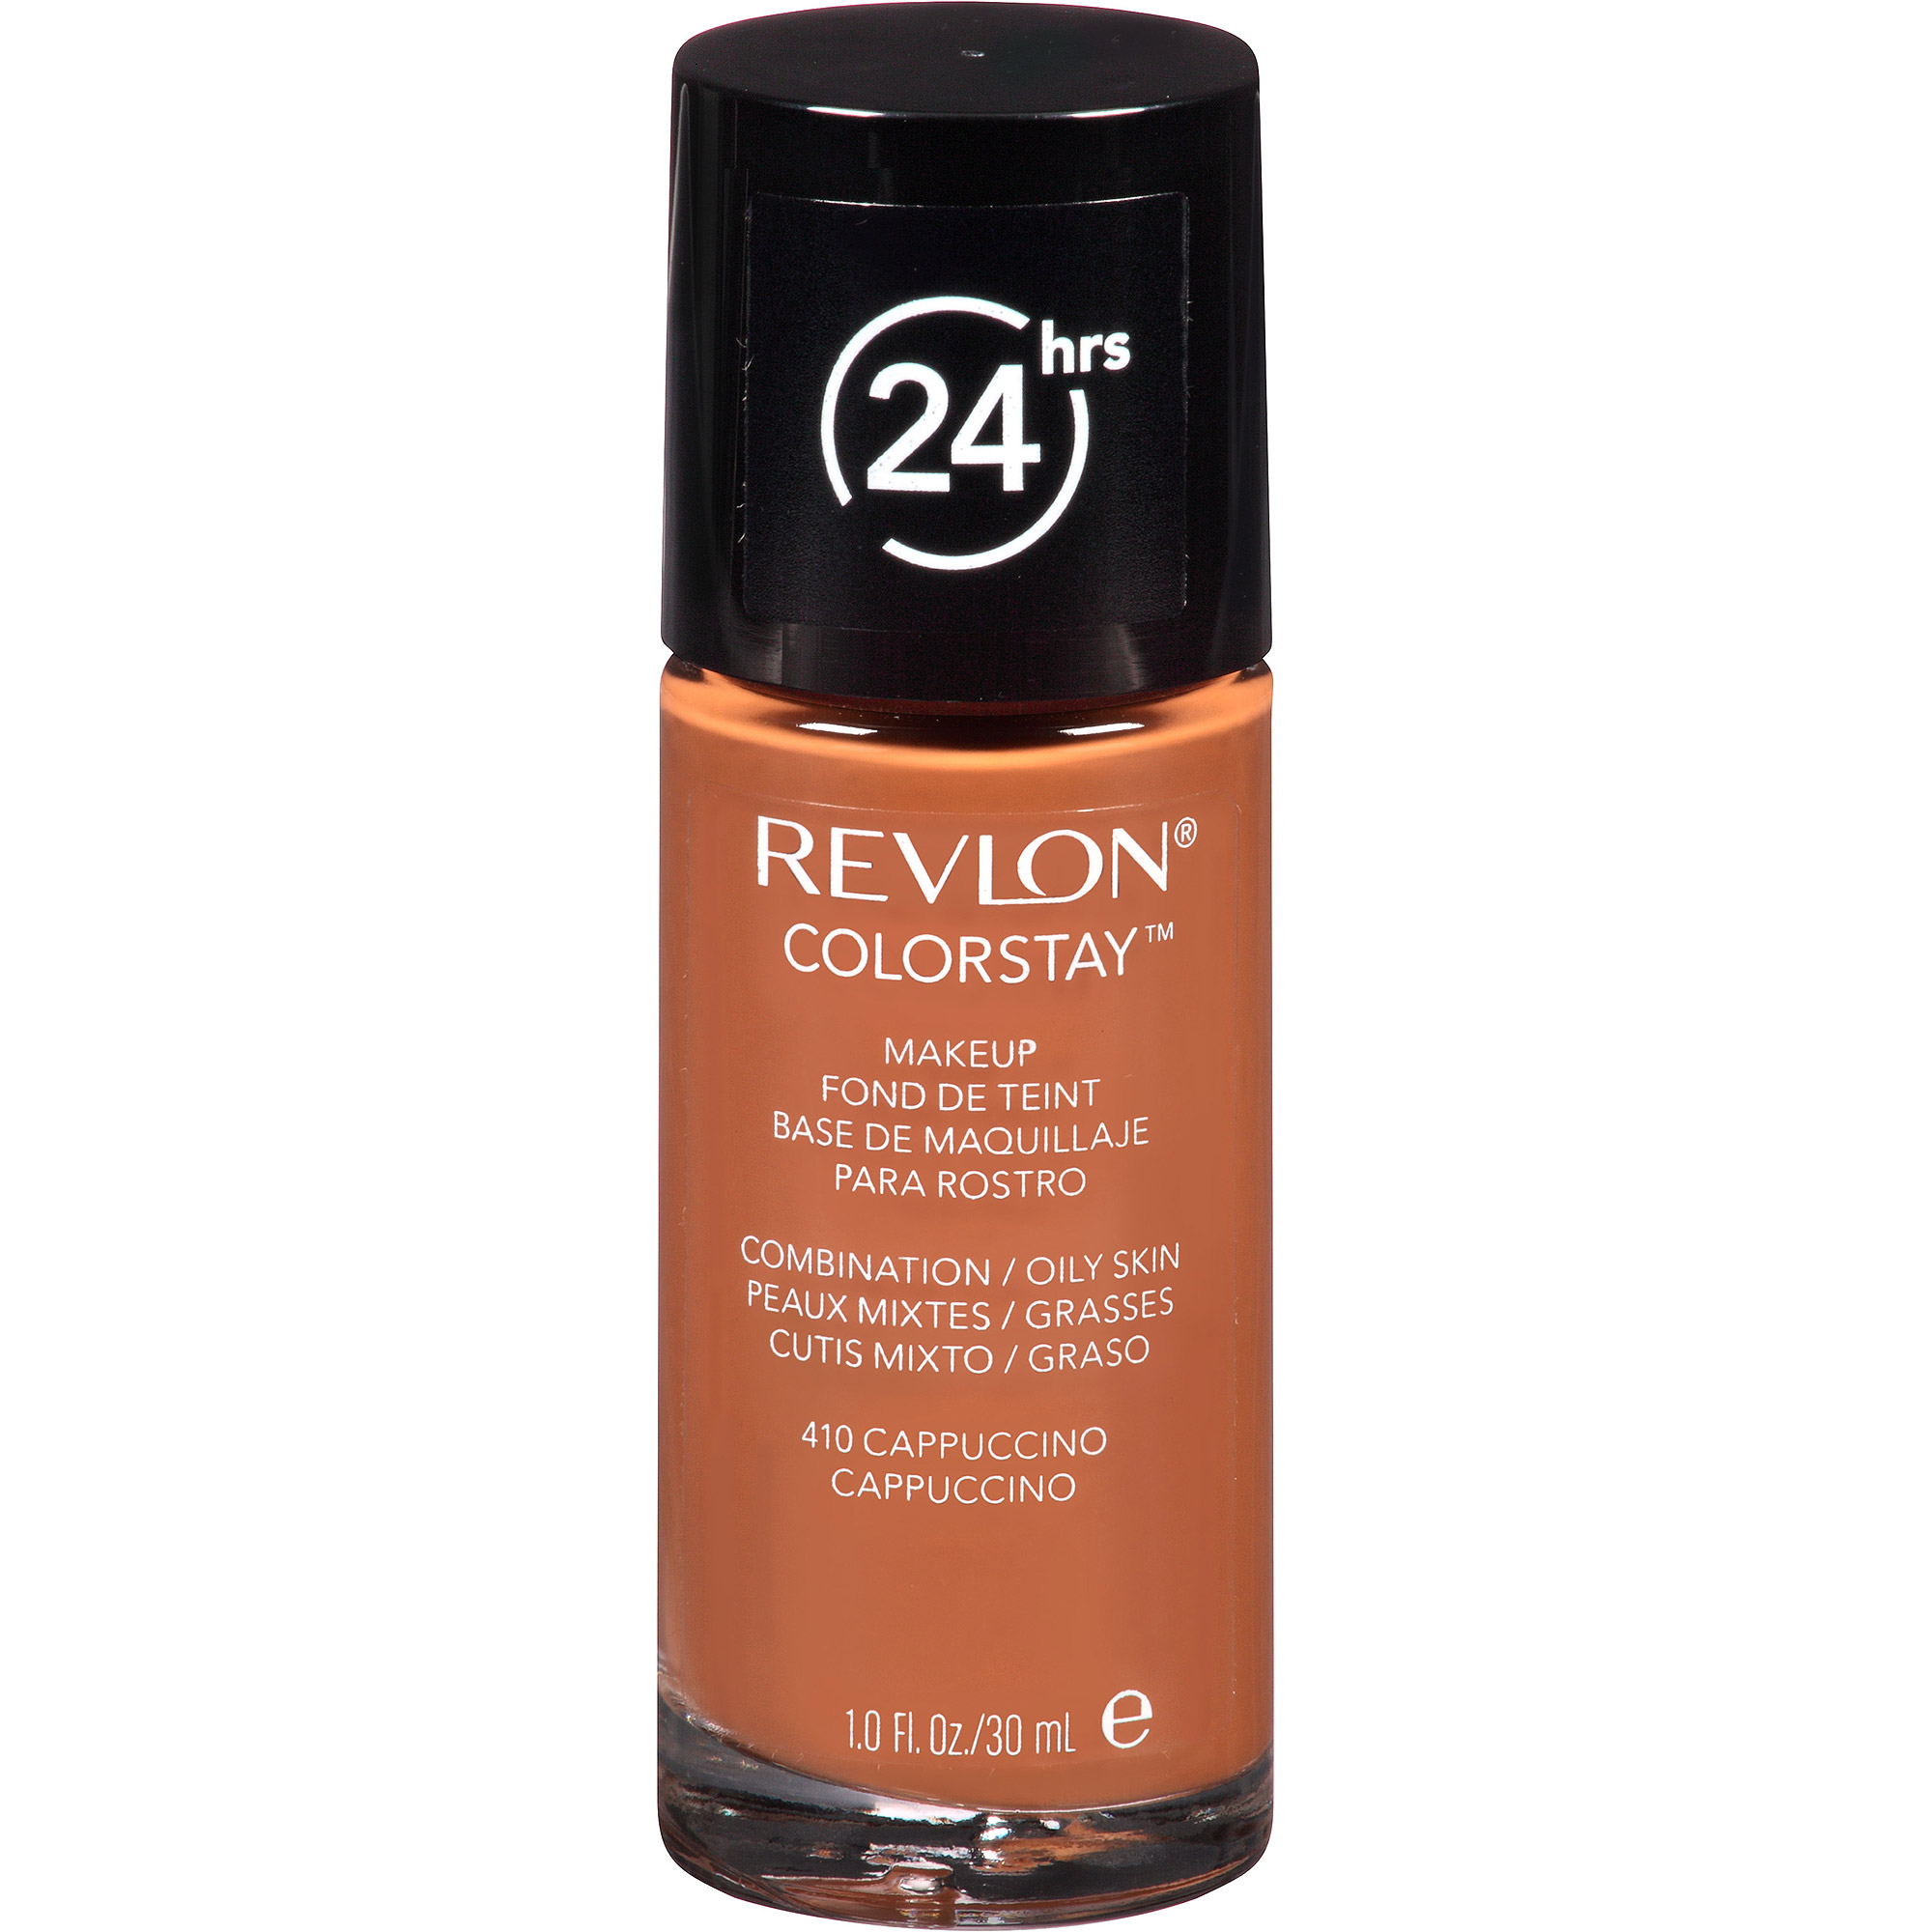 Revlon ColorStay Makeup for Combination/Oily Skin, 410 Cappuccino, 1 fl oz